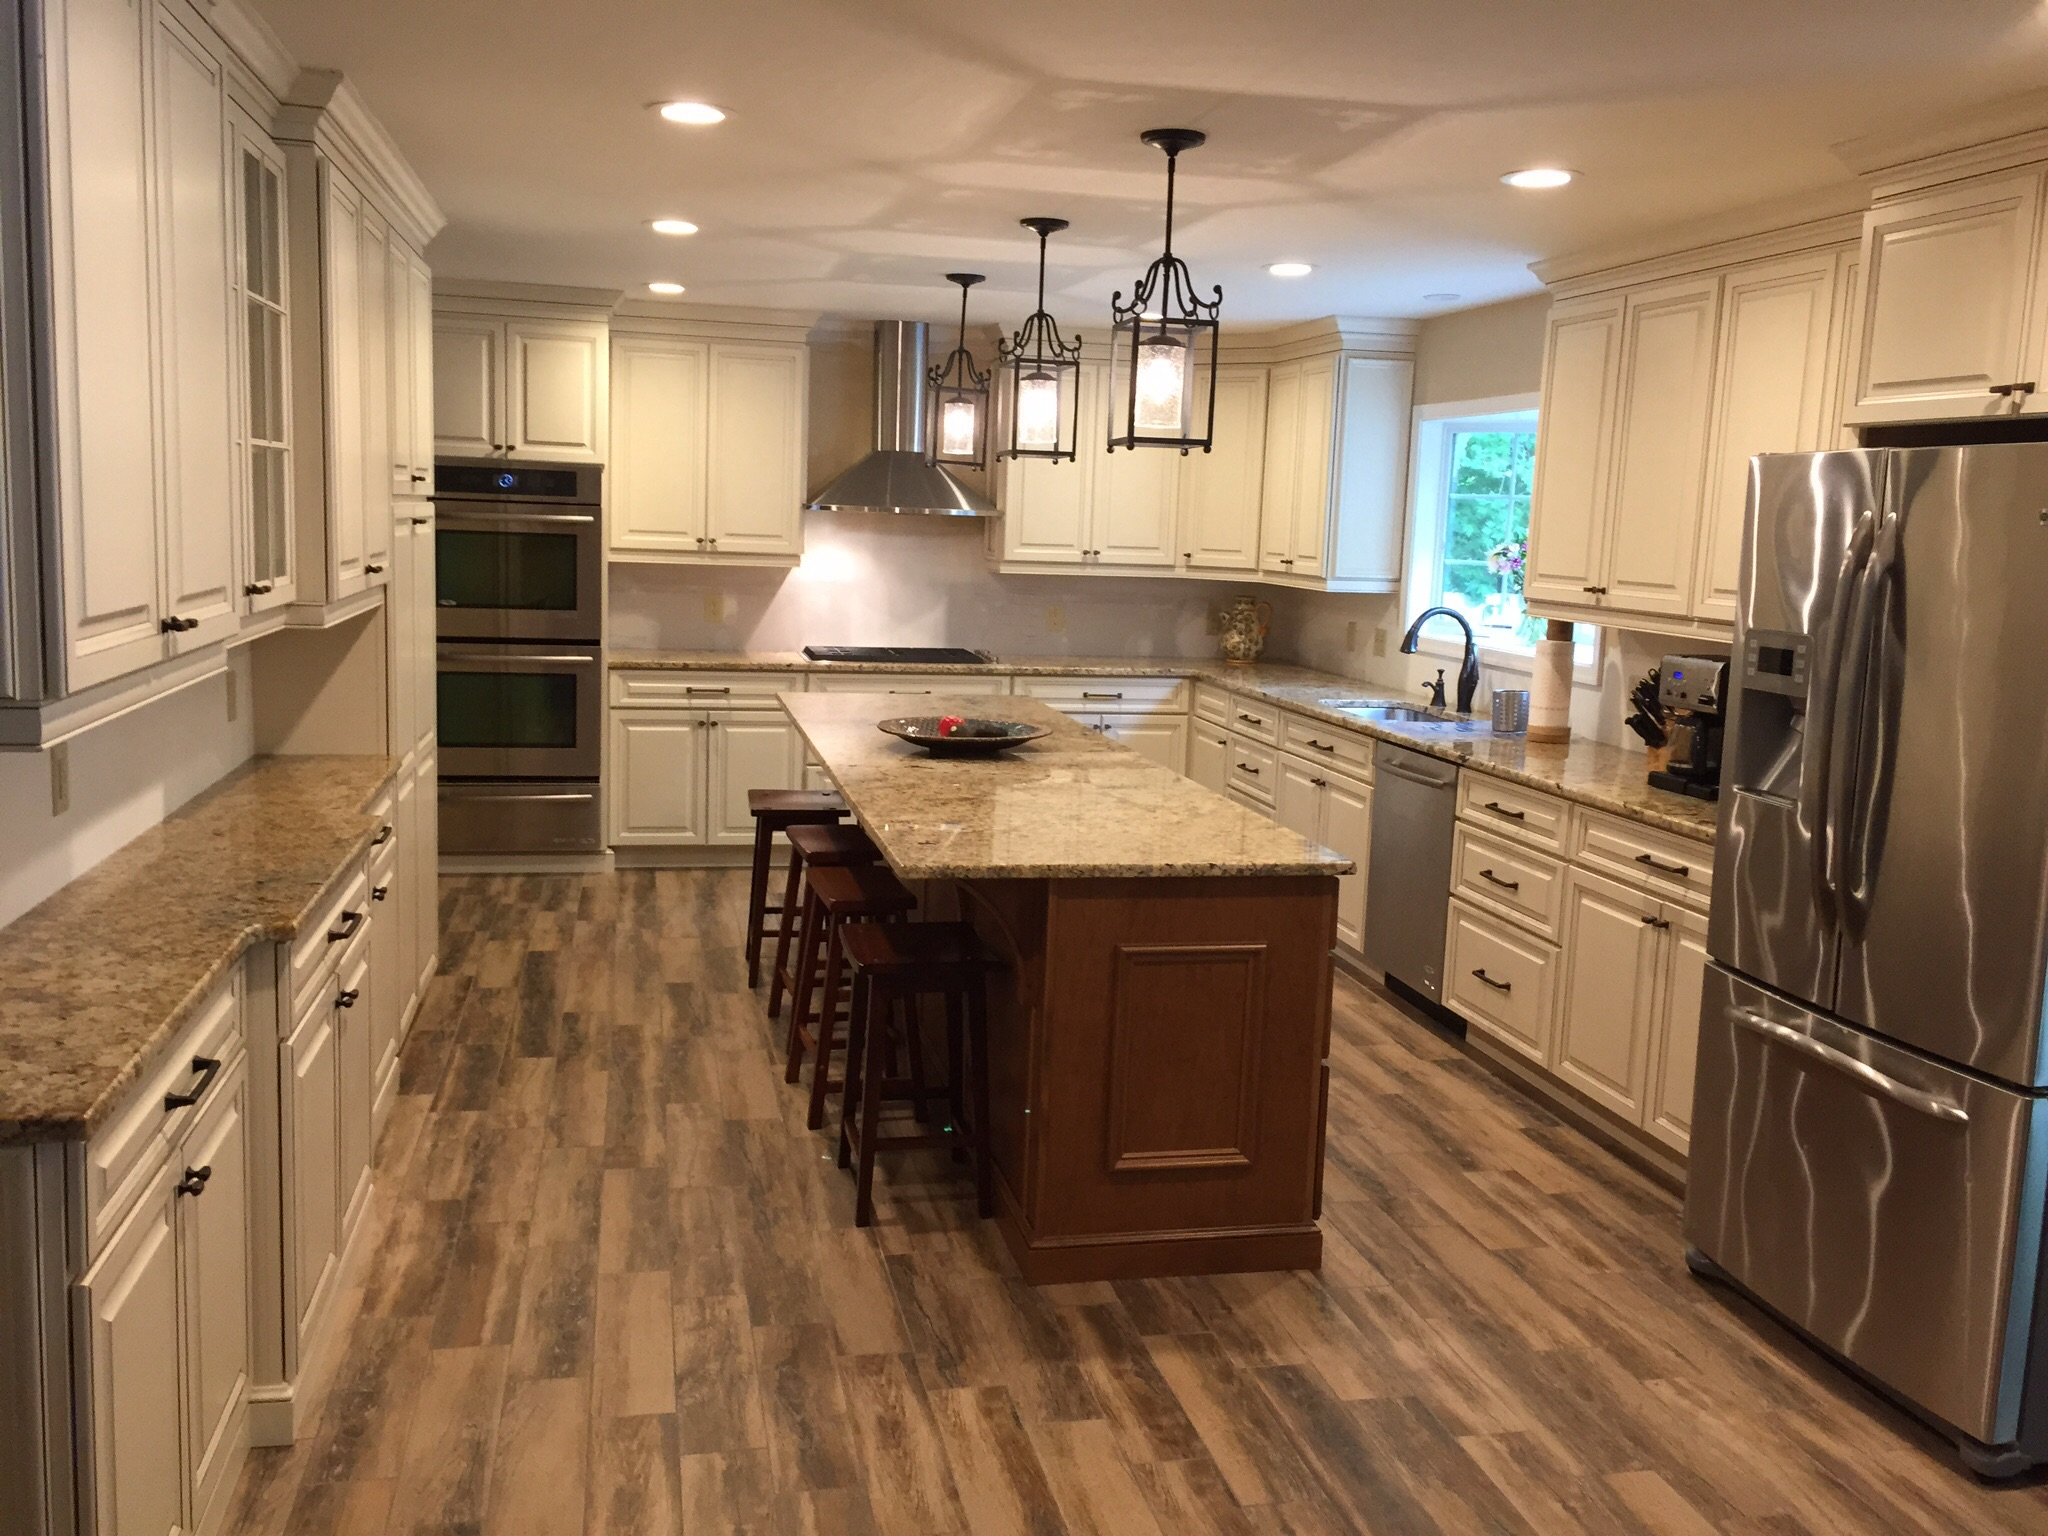 south jersey kitchen remodeling best place to buy appliances renovation a master builders remodel